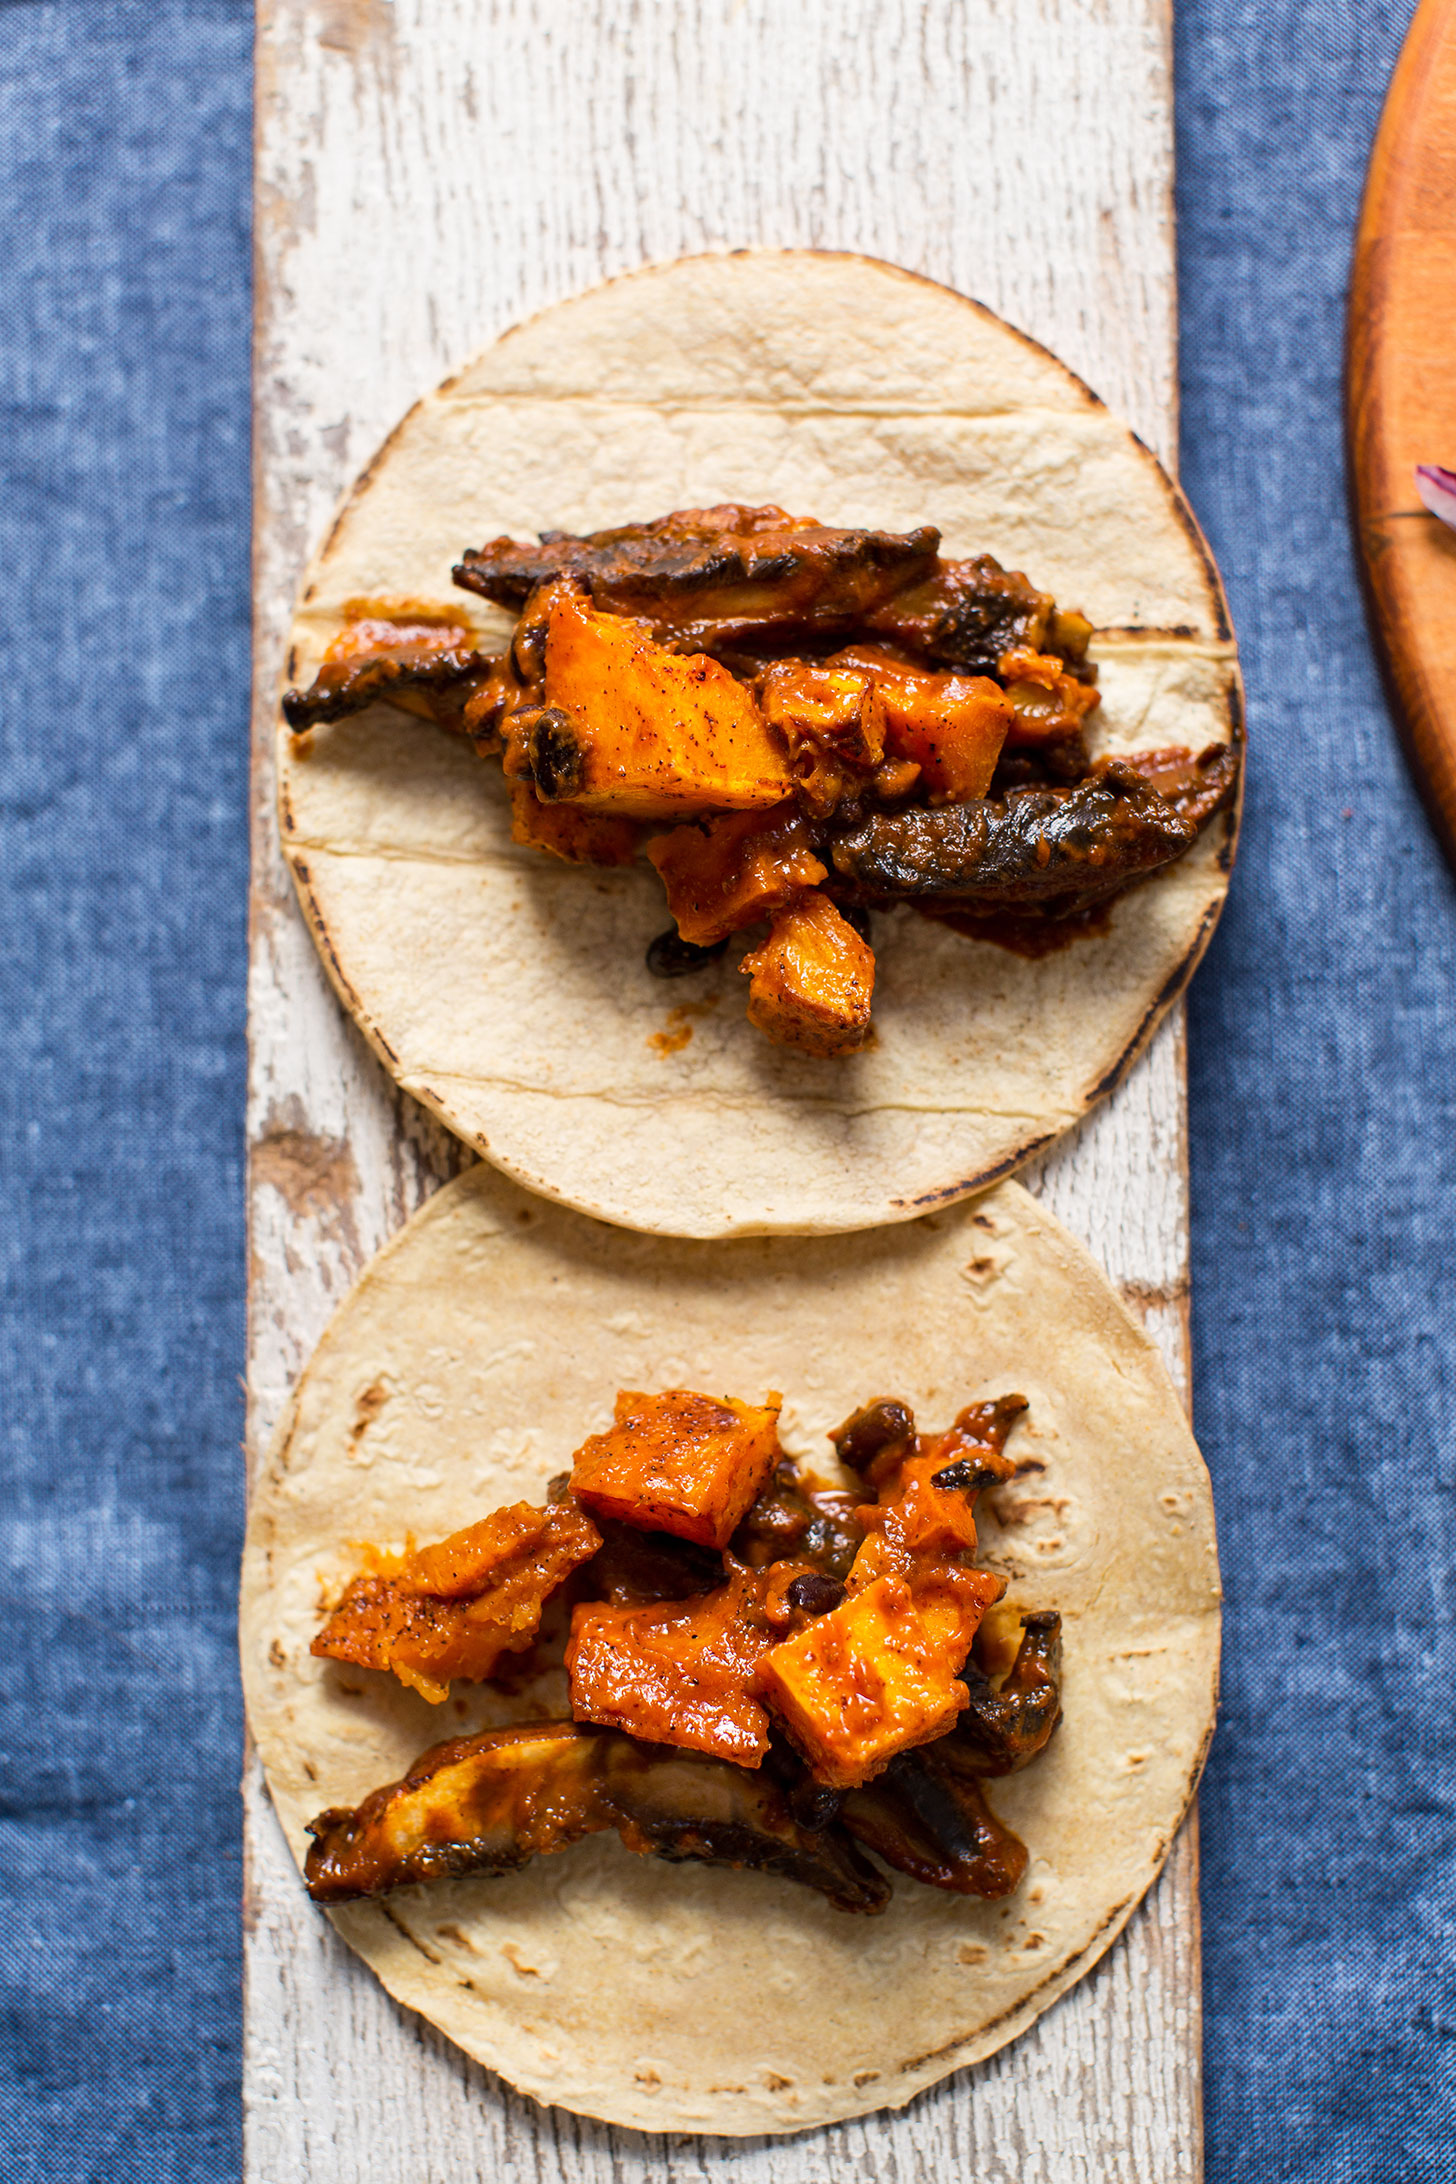 Amazing squash and mushroom vegan tacos on a wood plank